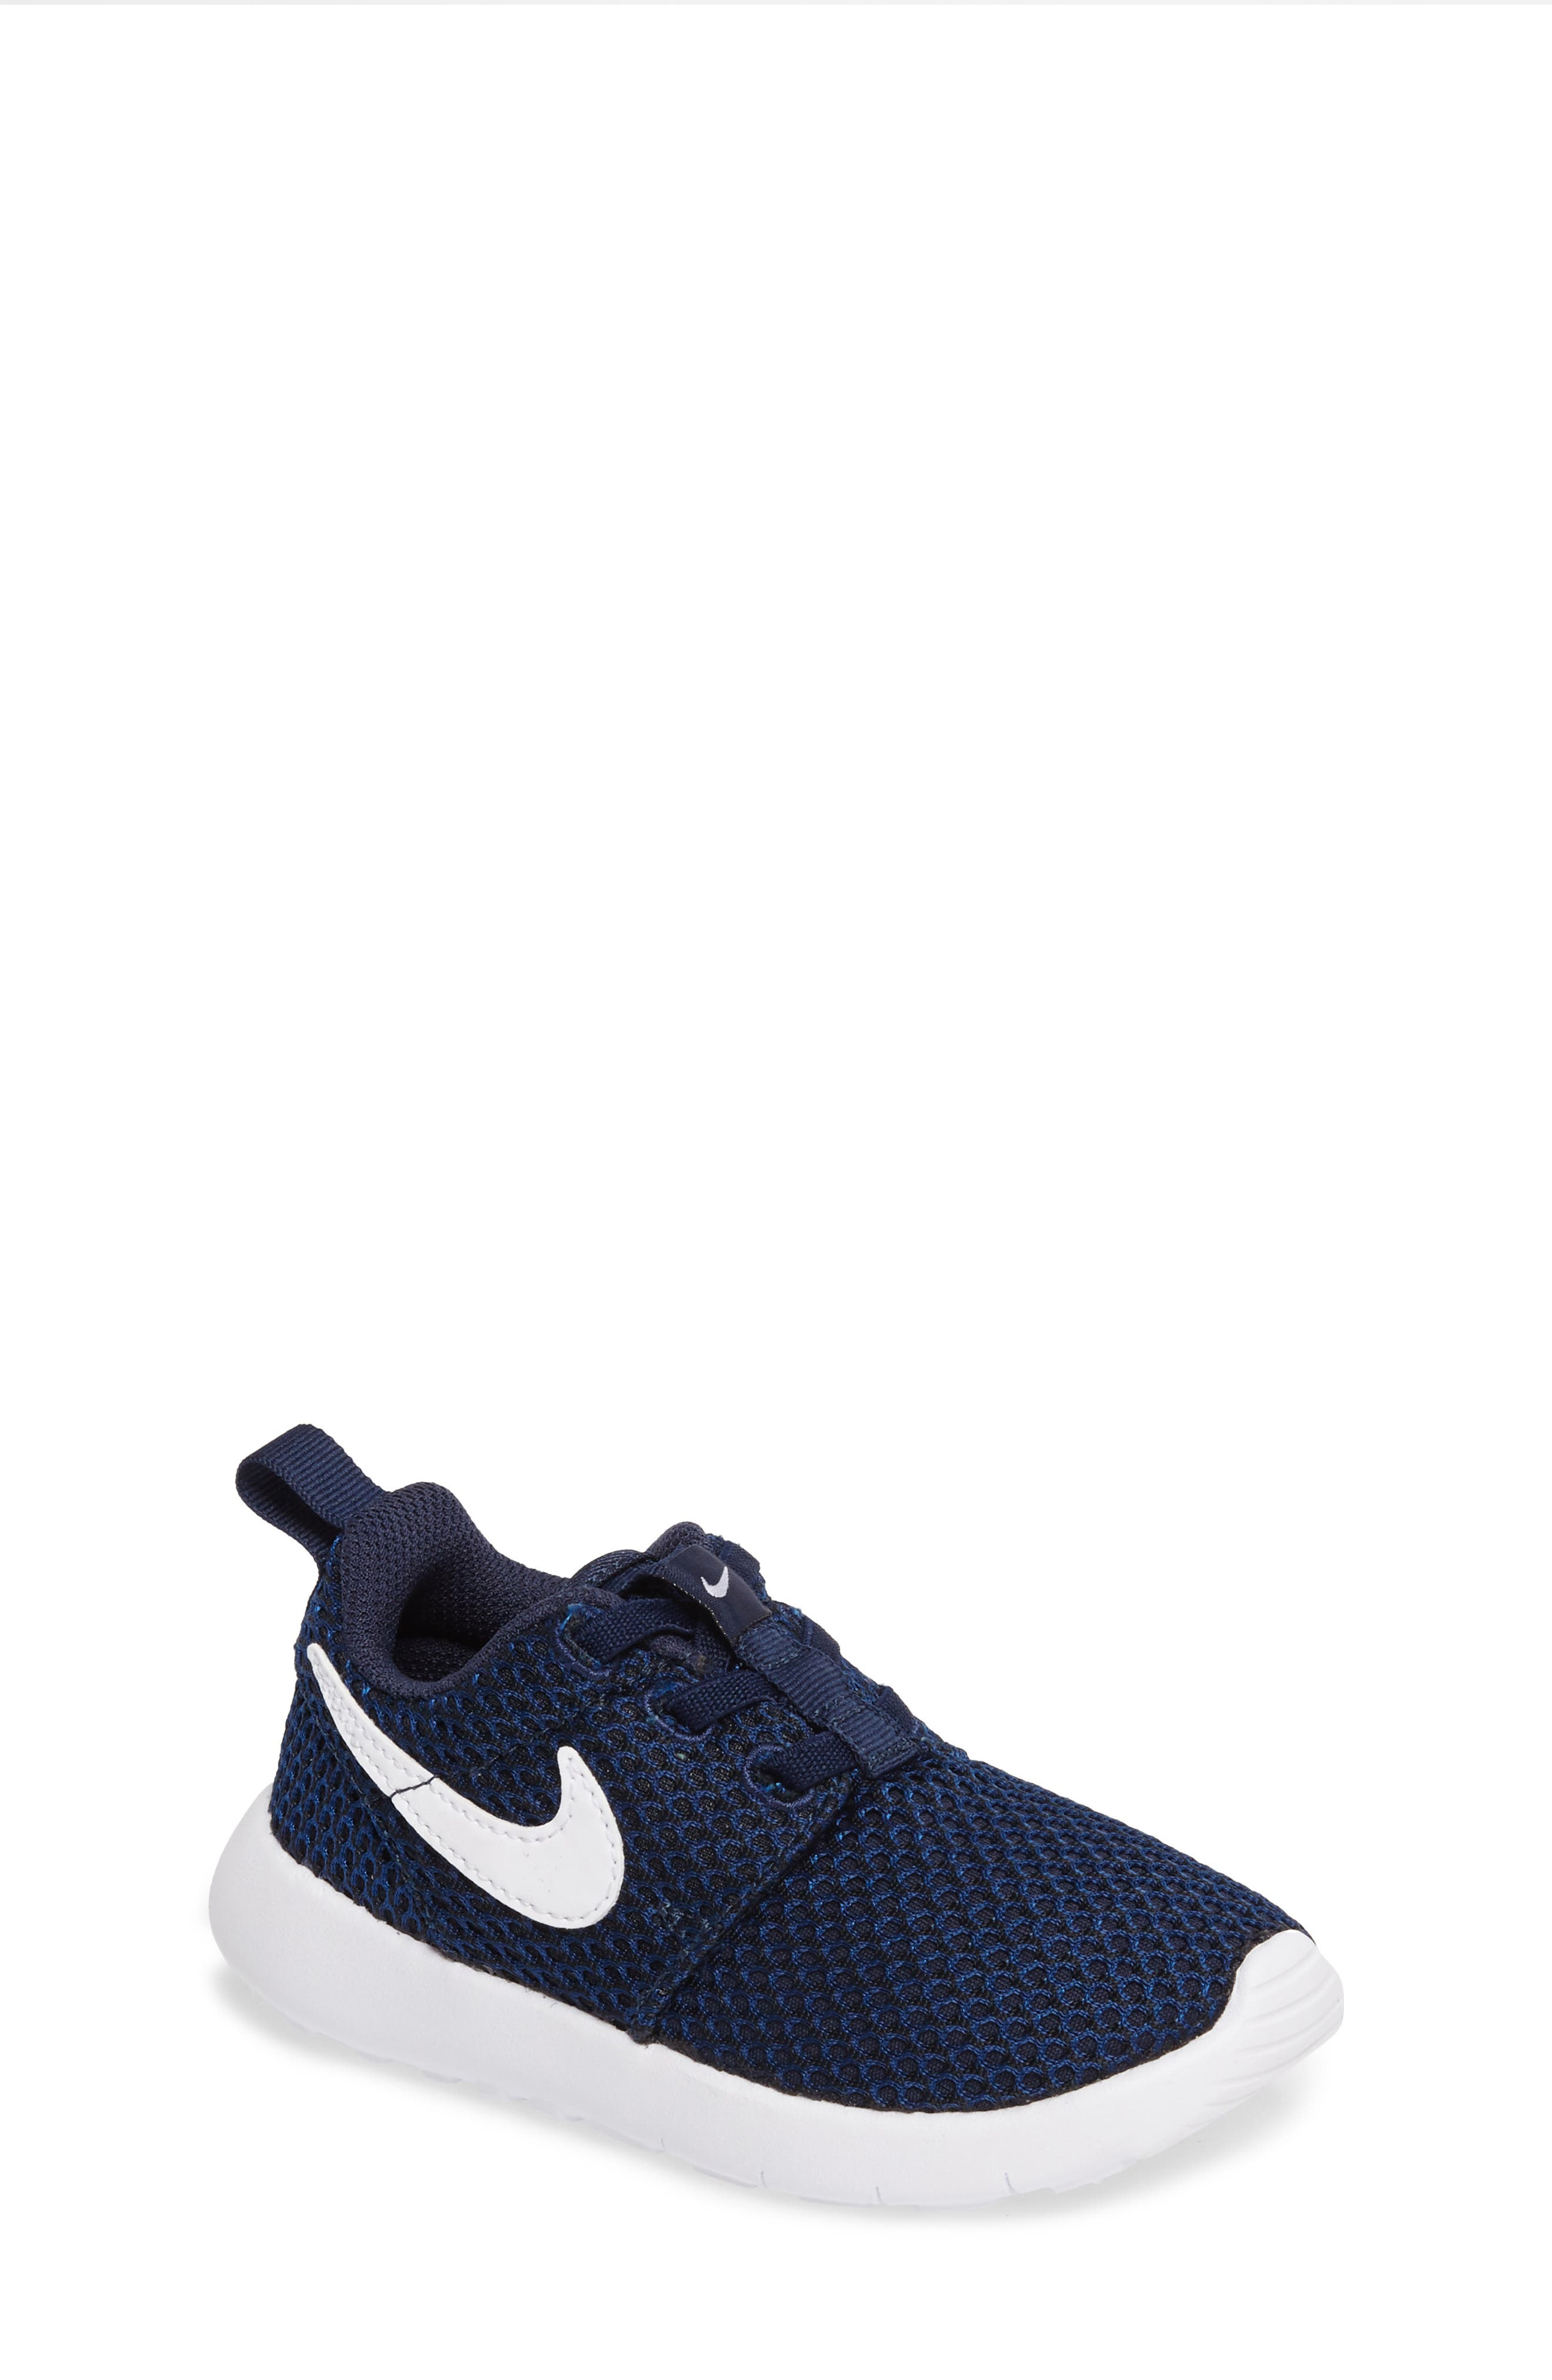 Alternate Image 1 Selected - Nike 'Roshe Run' Sneaker (Baby, Walker & Toddler)